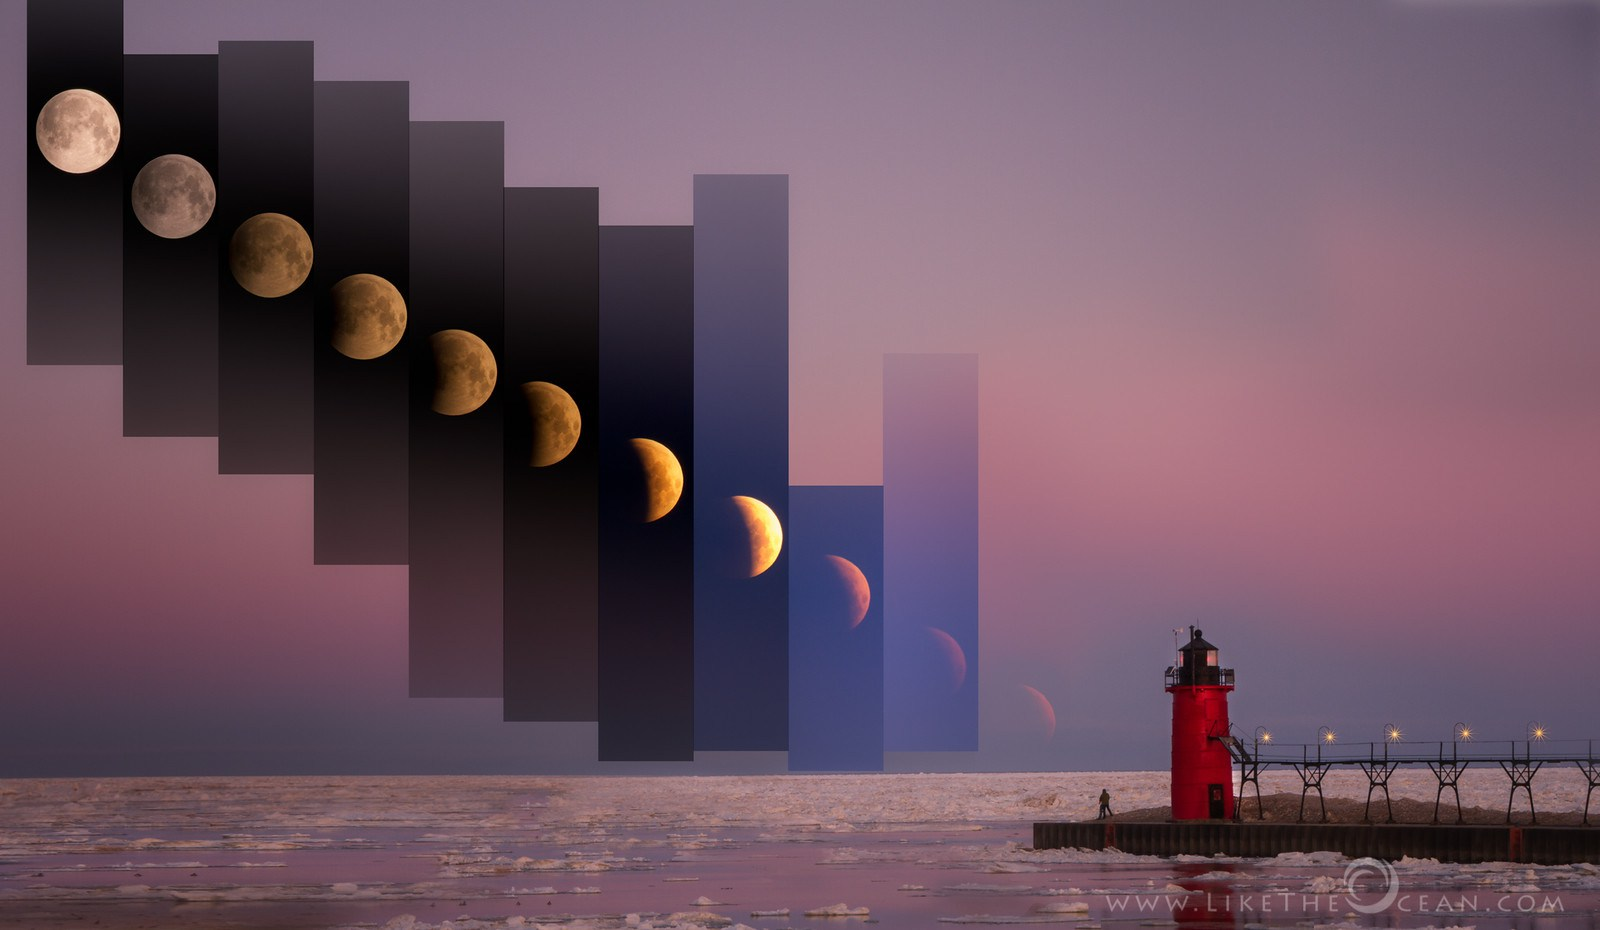 Time Slice of Lunar Eclipse 04.04.2015 South Haven, Michigan, USA